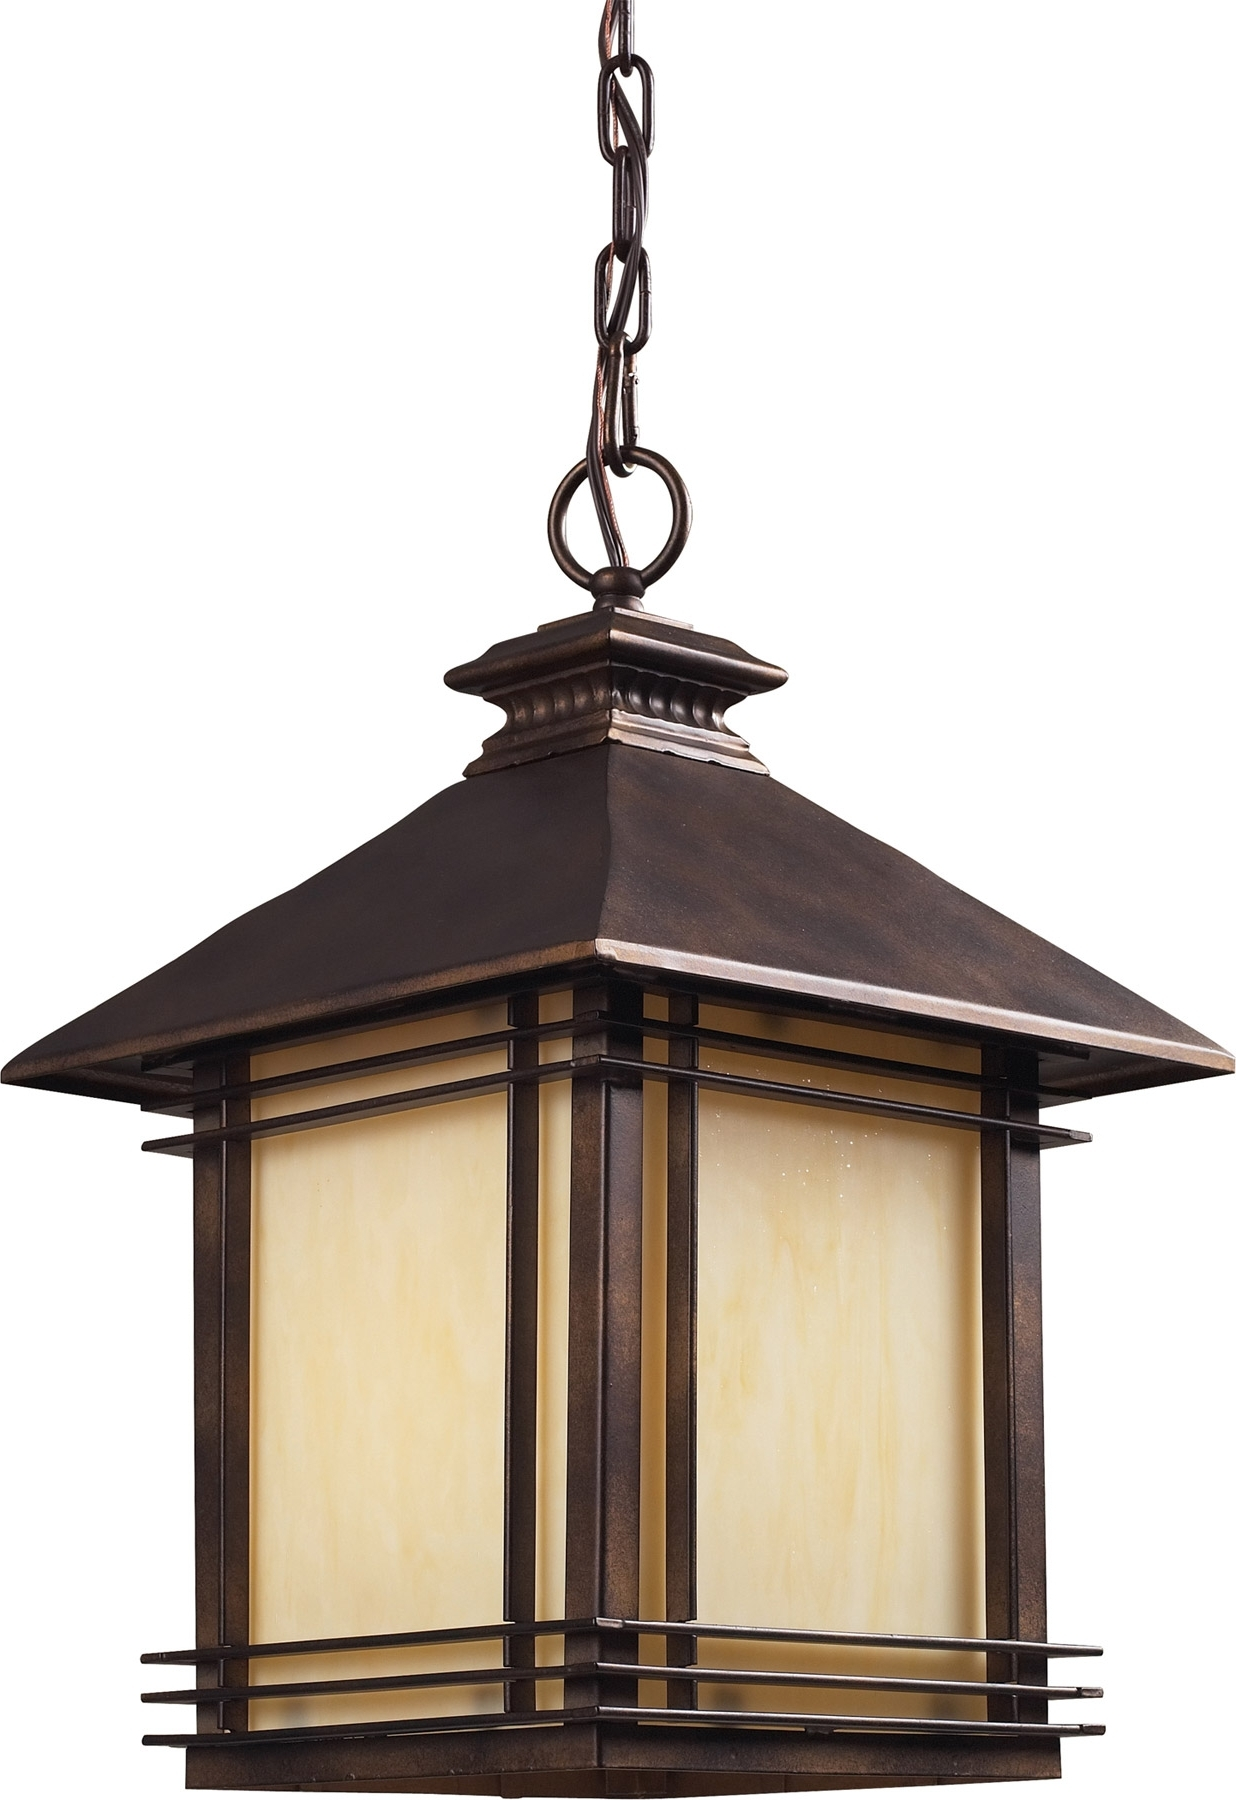 Lighting 42103/1 Blackwell Outdoor Hanging Lantern Within Most Up To Date Indoor Outdoor Hanging Lights (View 17 of 20)